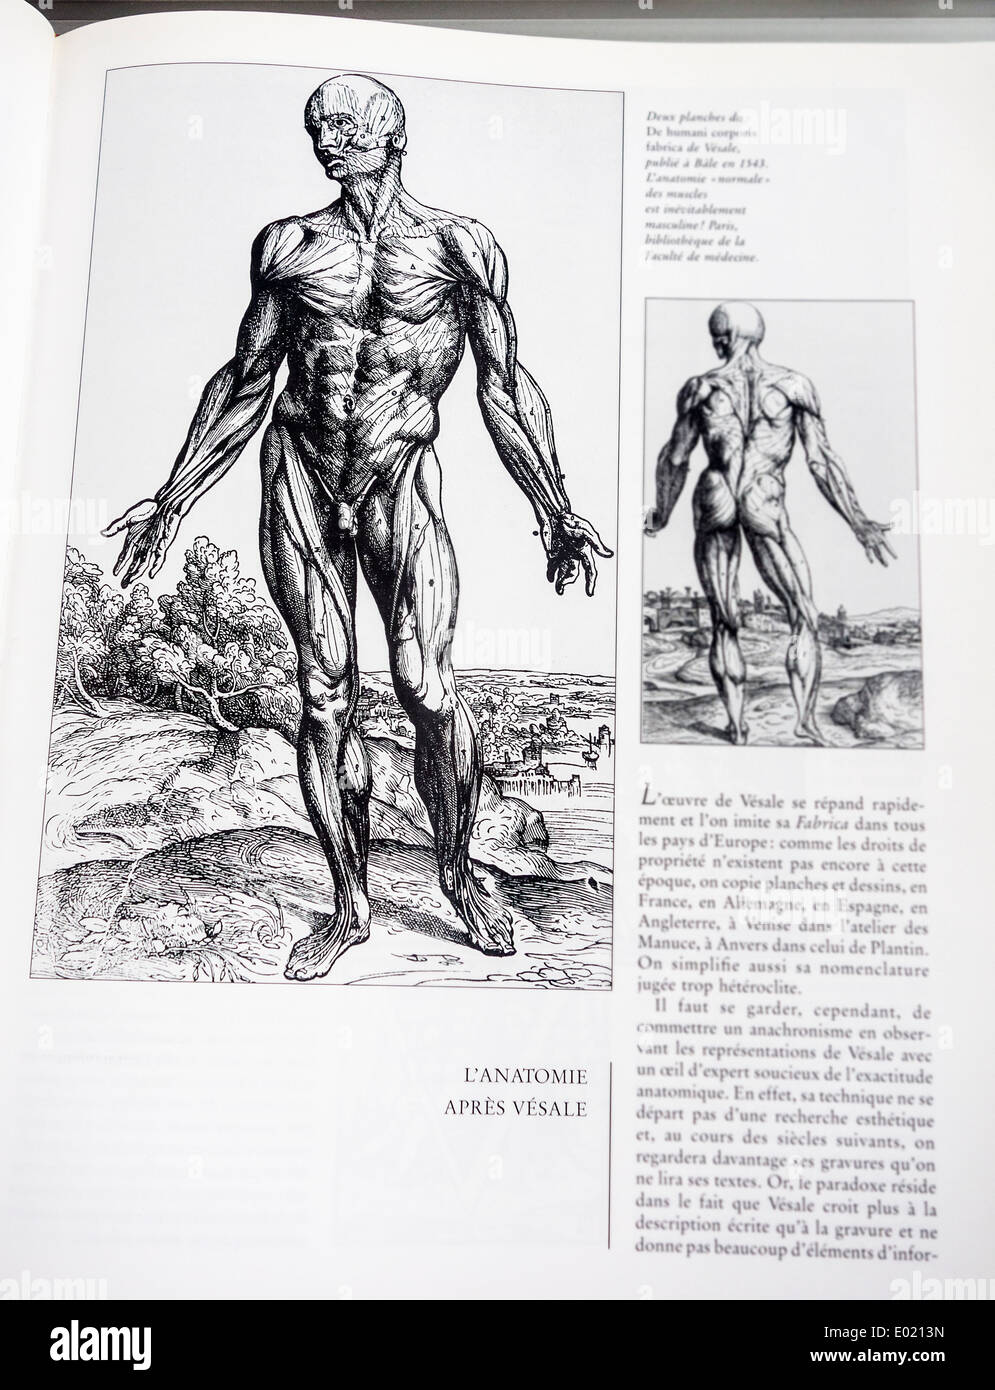 Book with detailed illustrations on human anatomy, De humani corporis fabrica by Belgian anatomist Andreas Vesalius - Stock Image